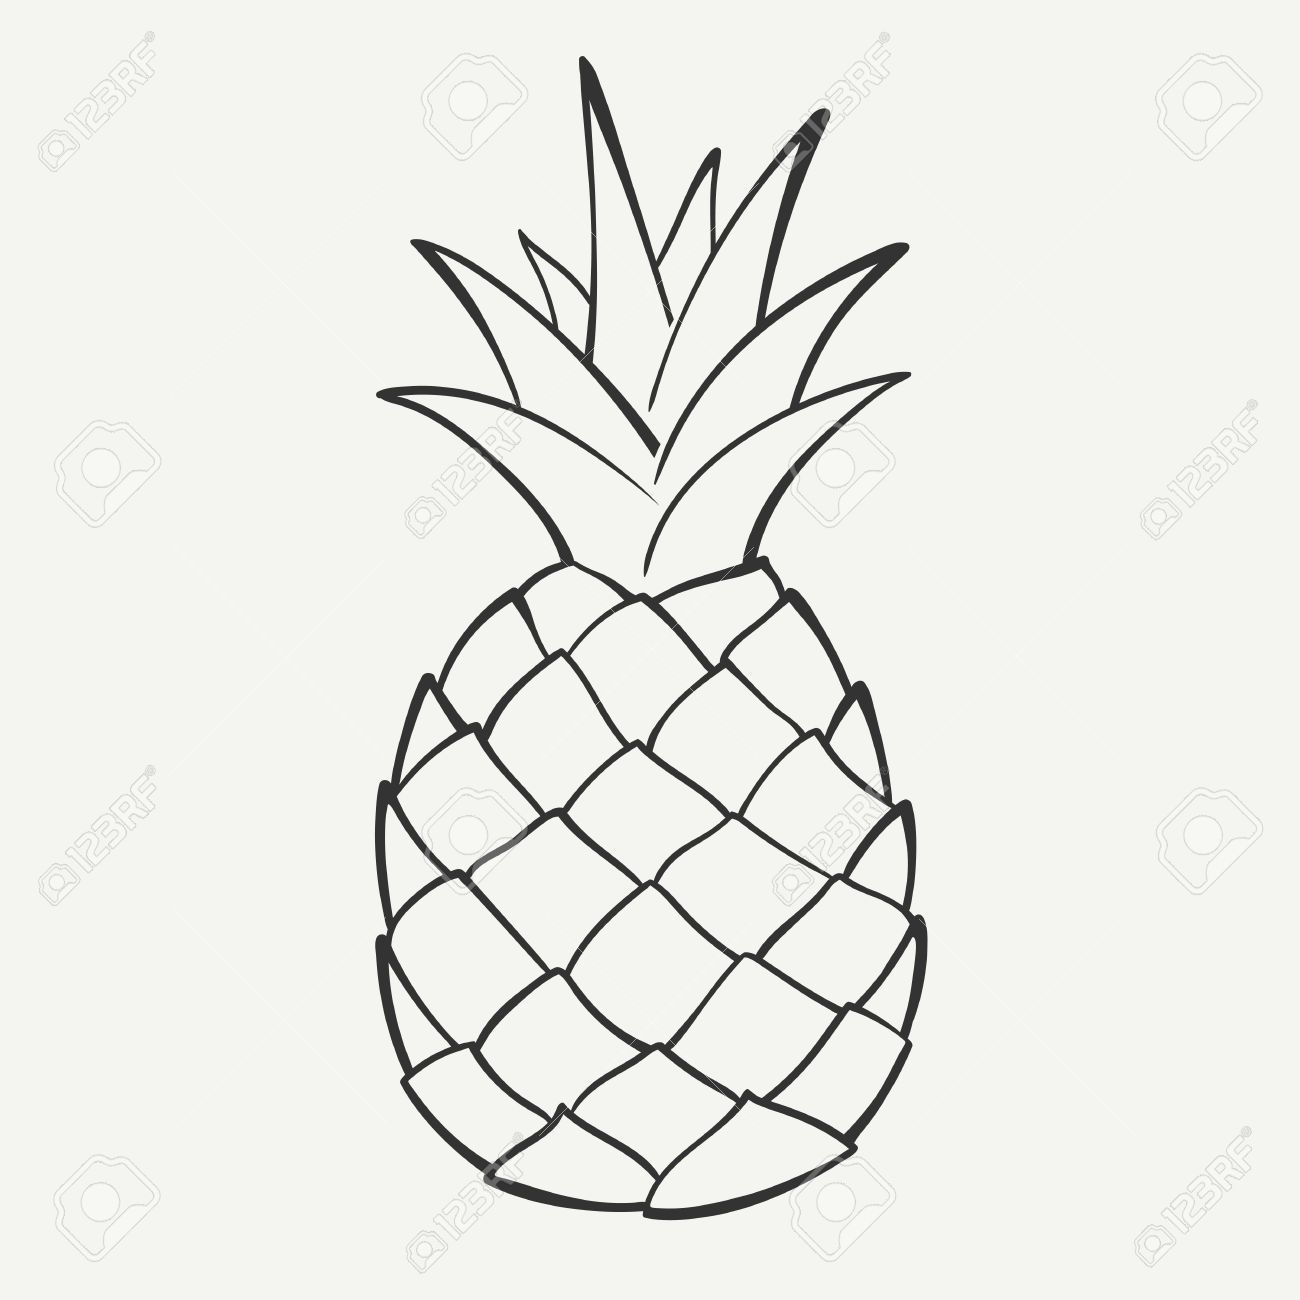 1300x1300 Outline Black And White Image Of A Pineapple Royalty Free Cliparts